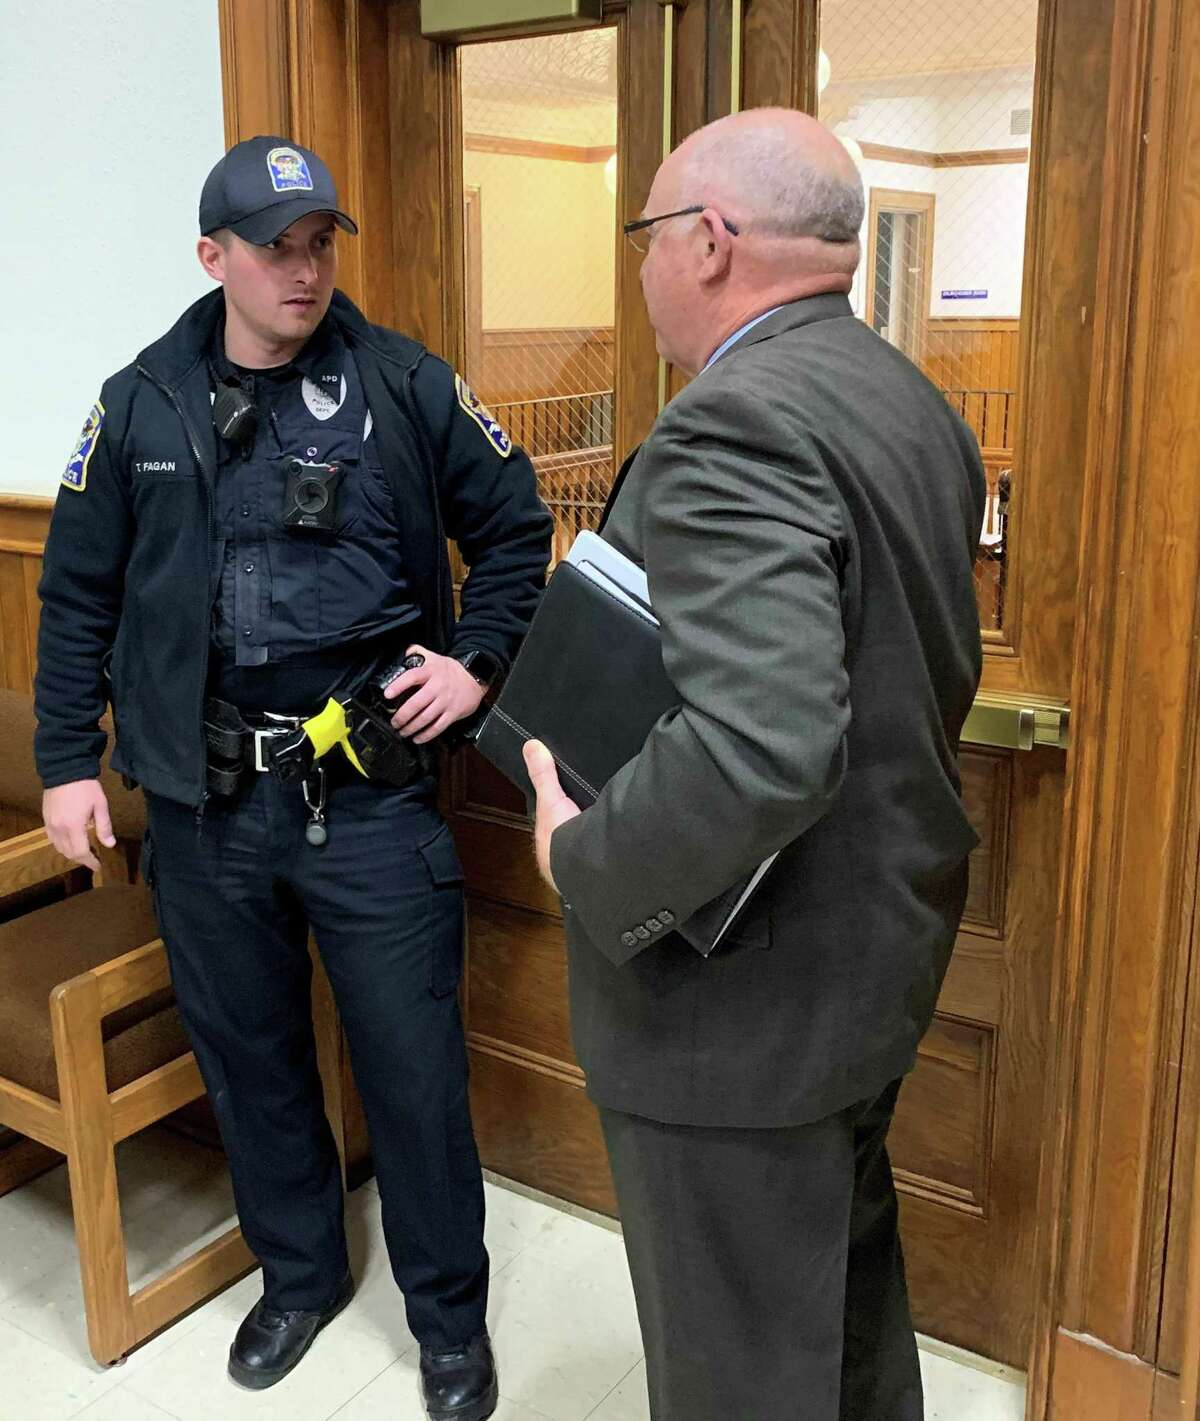 One of the two Ansonia police officers who responded to attorney Fred Dorsey's call to have Mayor David Cassetti removed talks to the school board lawyer. Dorsey declined time file a complaint because the mayor had left after adjourning the meeting.